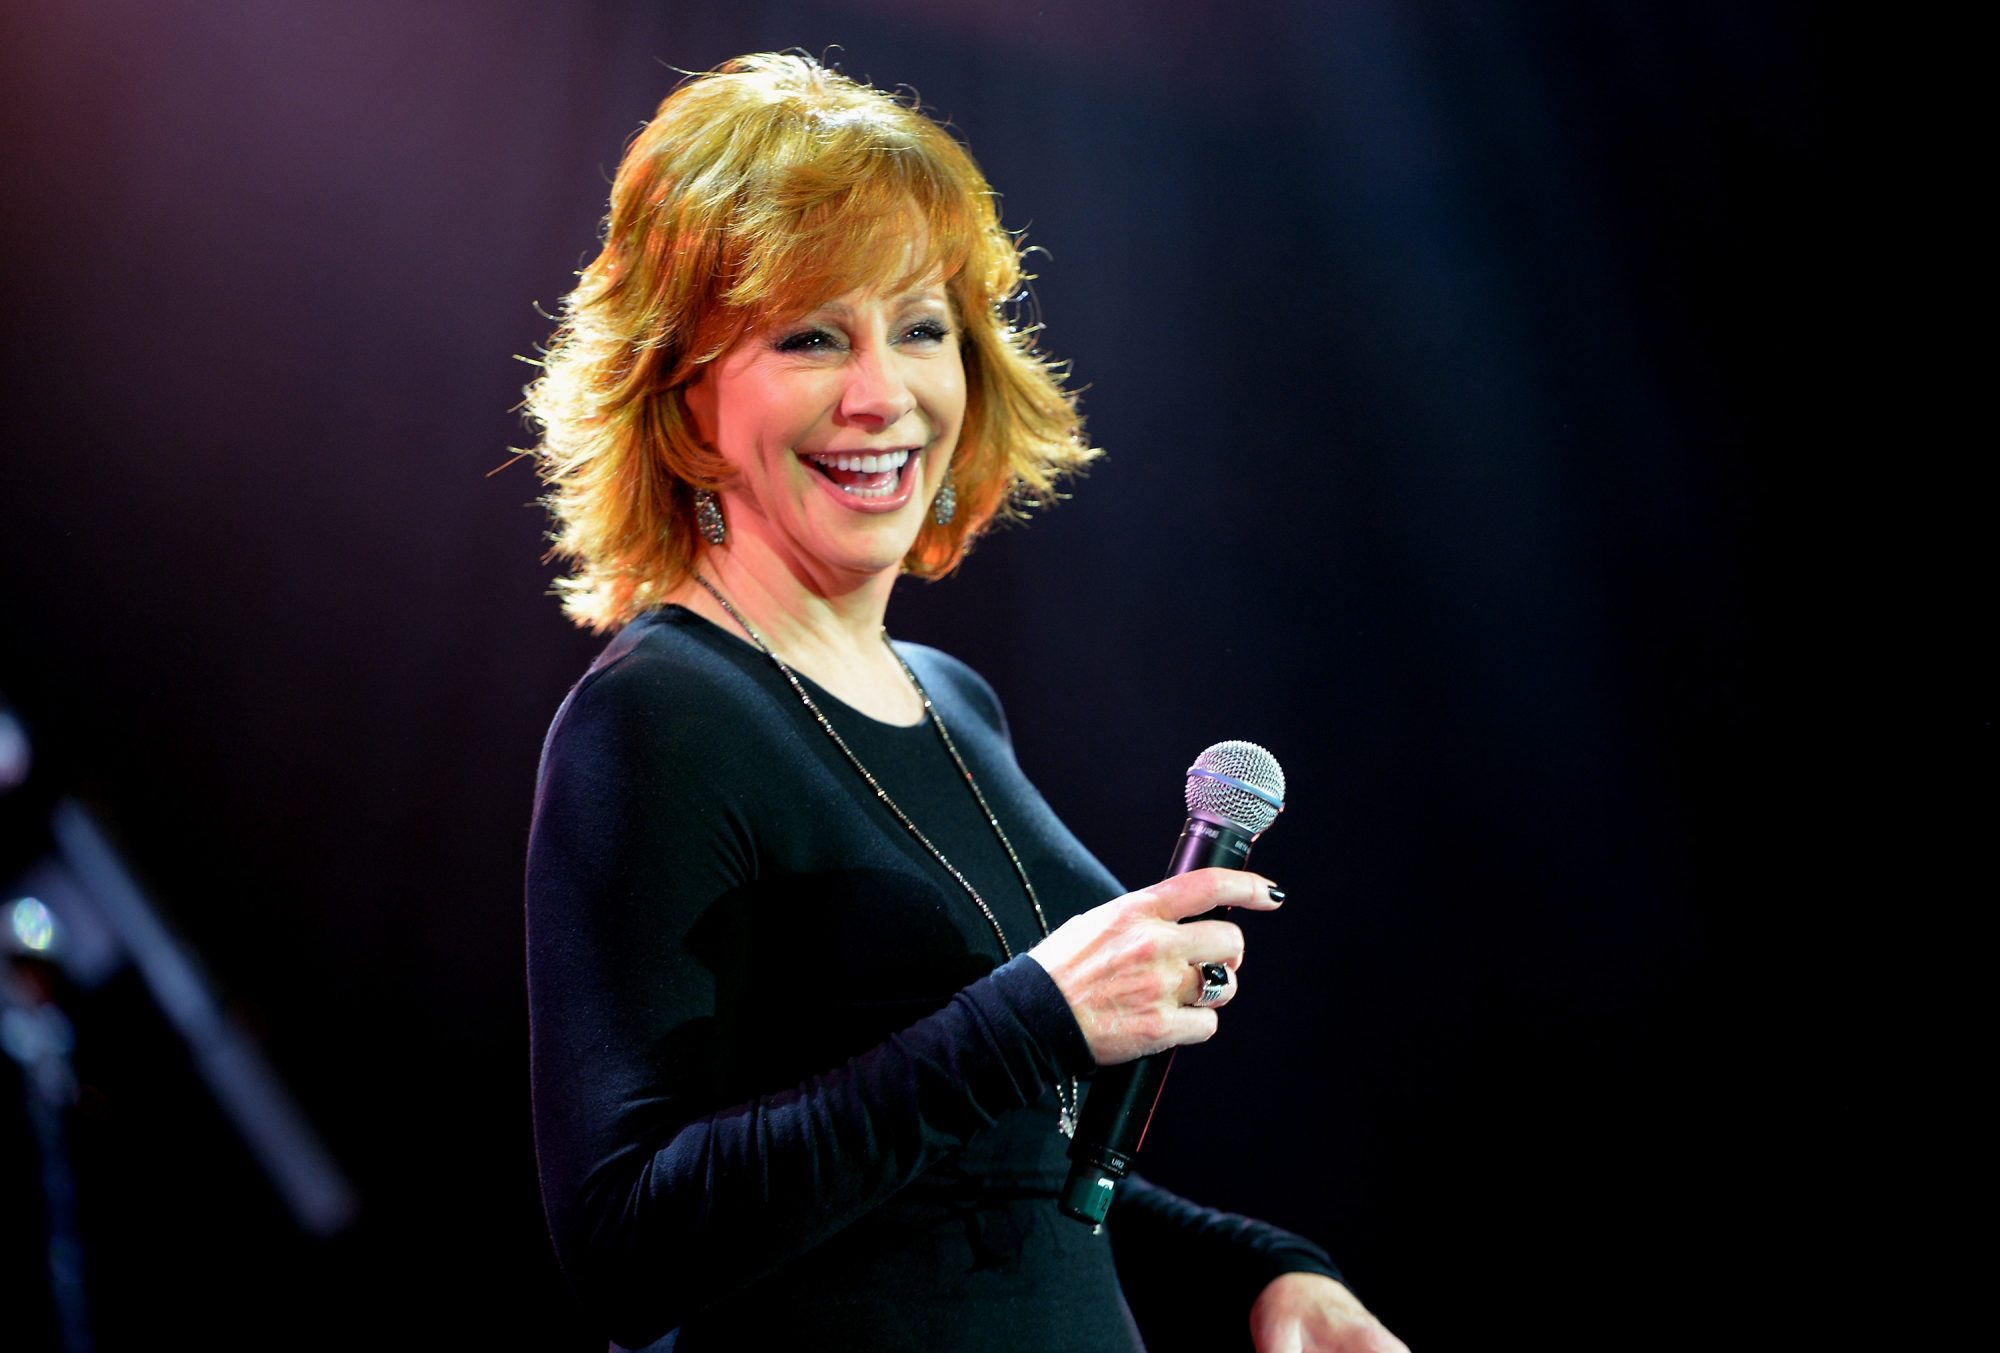 Reba McEntire at Muhammed Ali's Celeb Fight Night